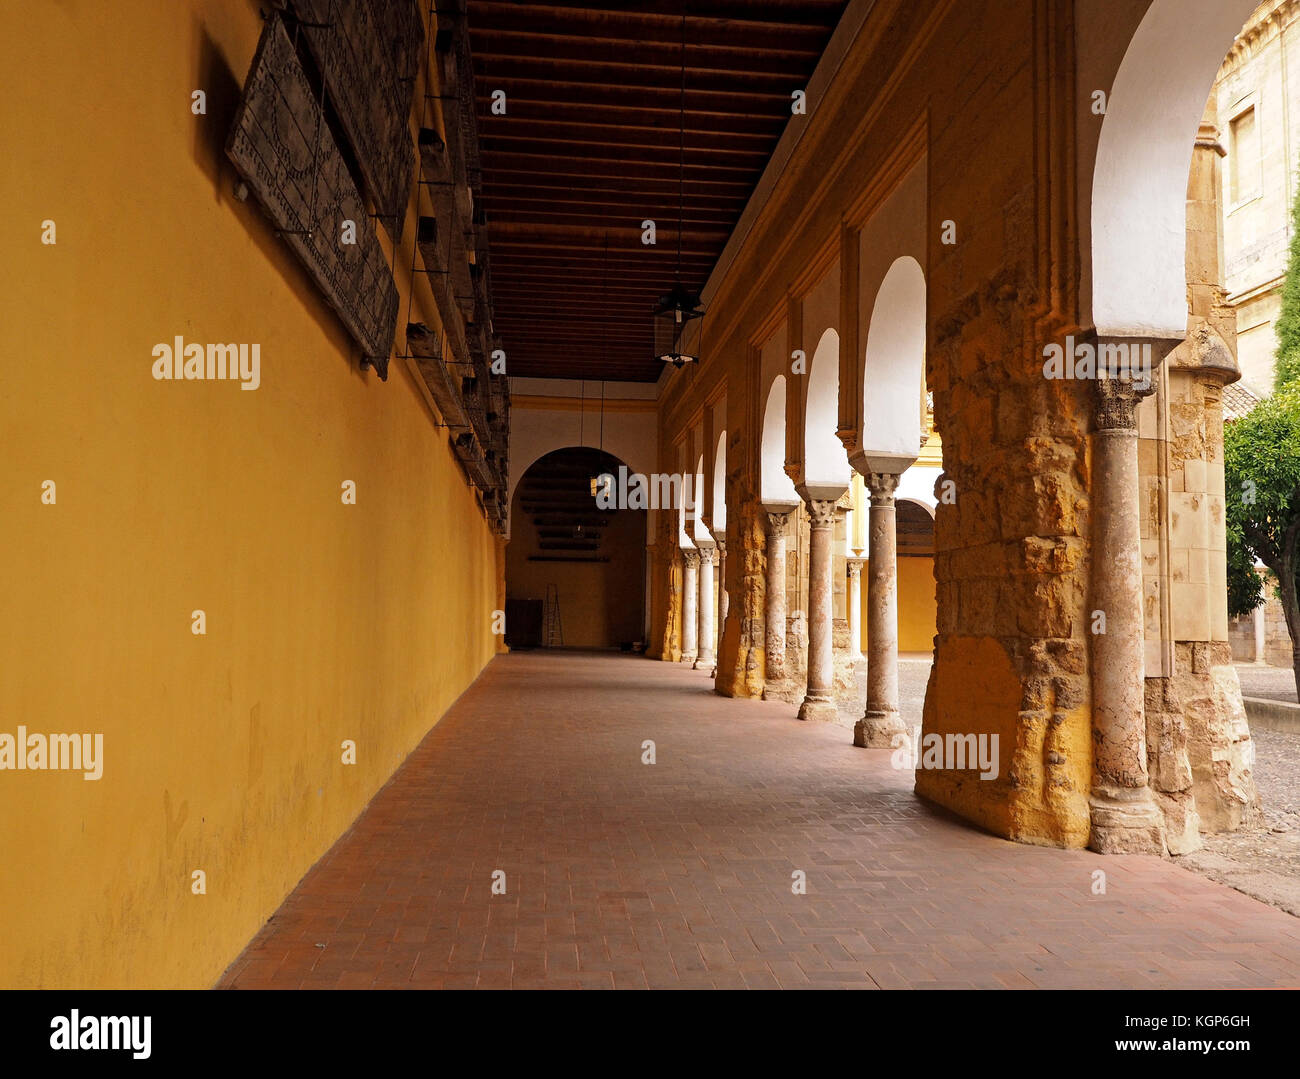 covered walkway with pillars alongside the Orange Tree Courtyard at the Great Mosque or Mosque Cathedral of Cordoba Stock Photo